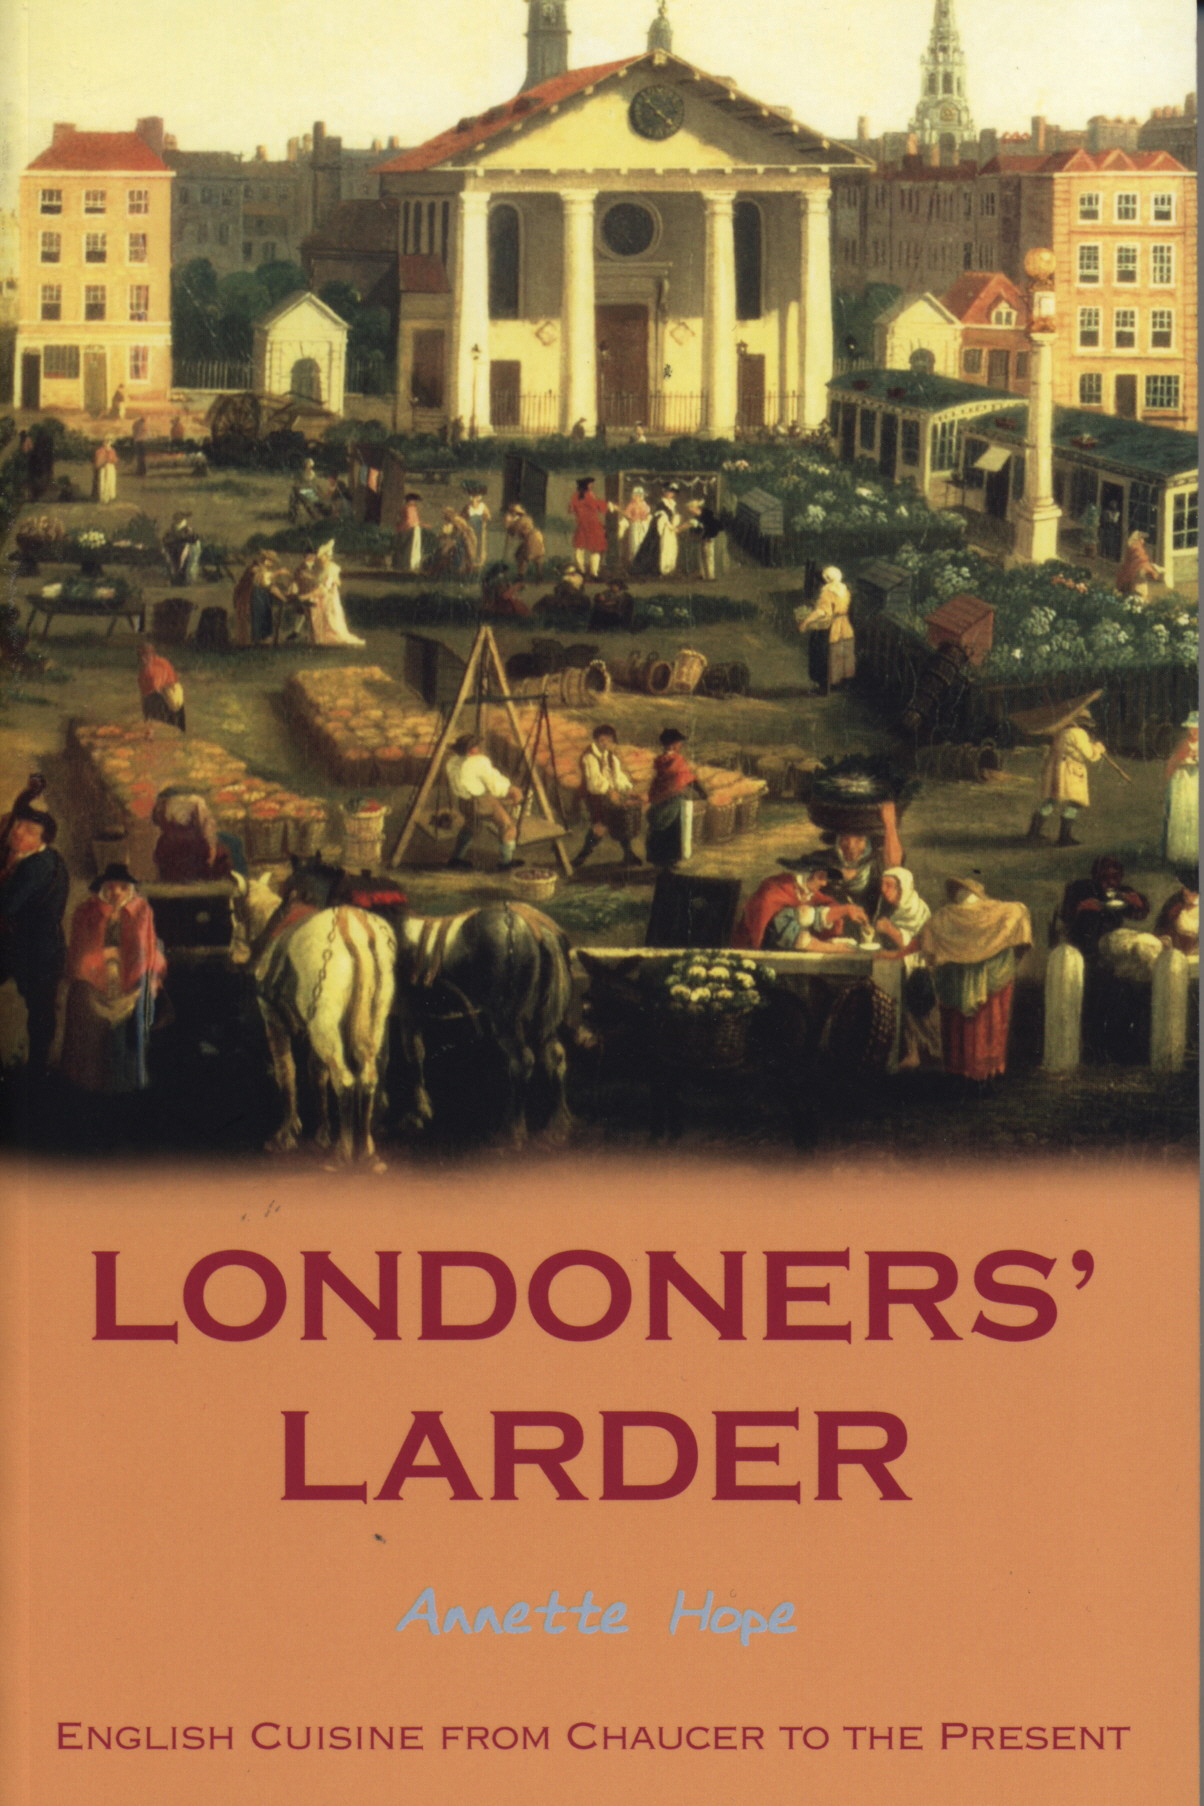 Londoners' Larder English Cuisine from Chaucer to the Present